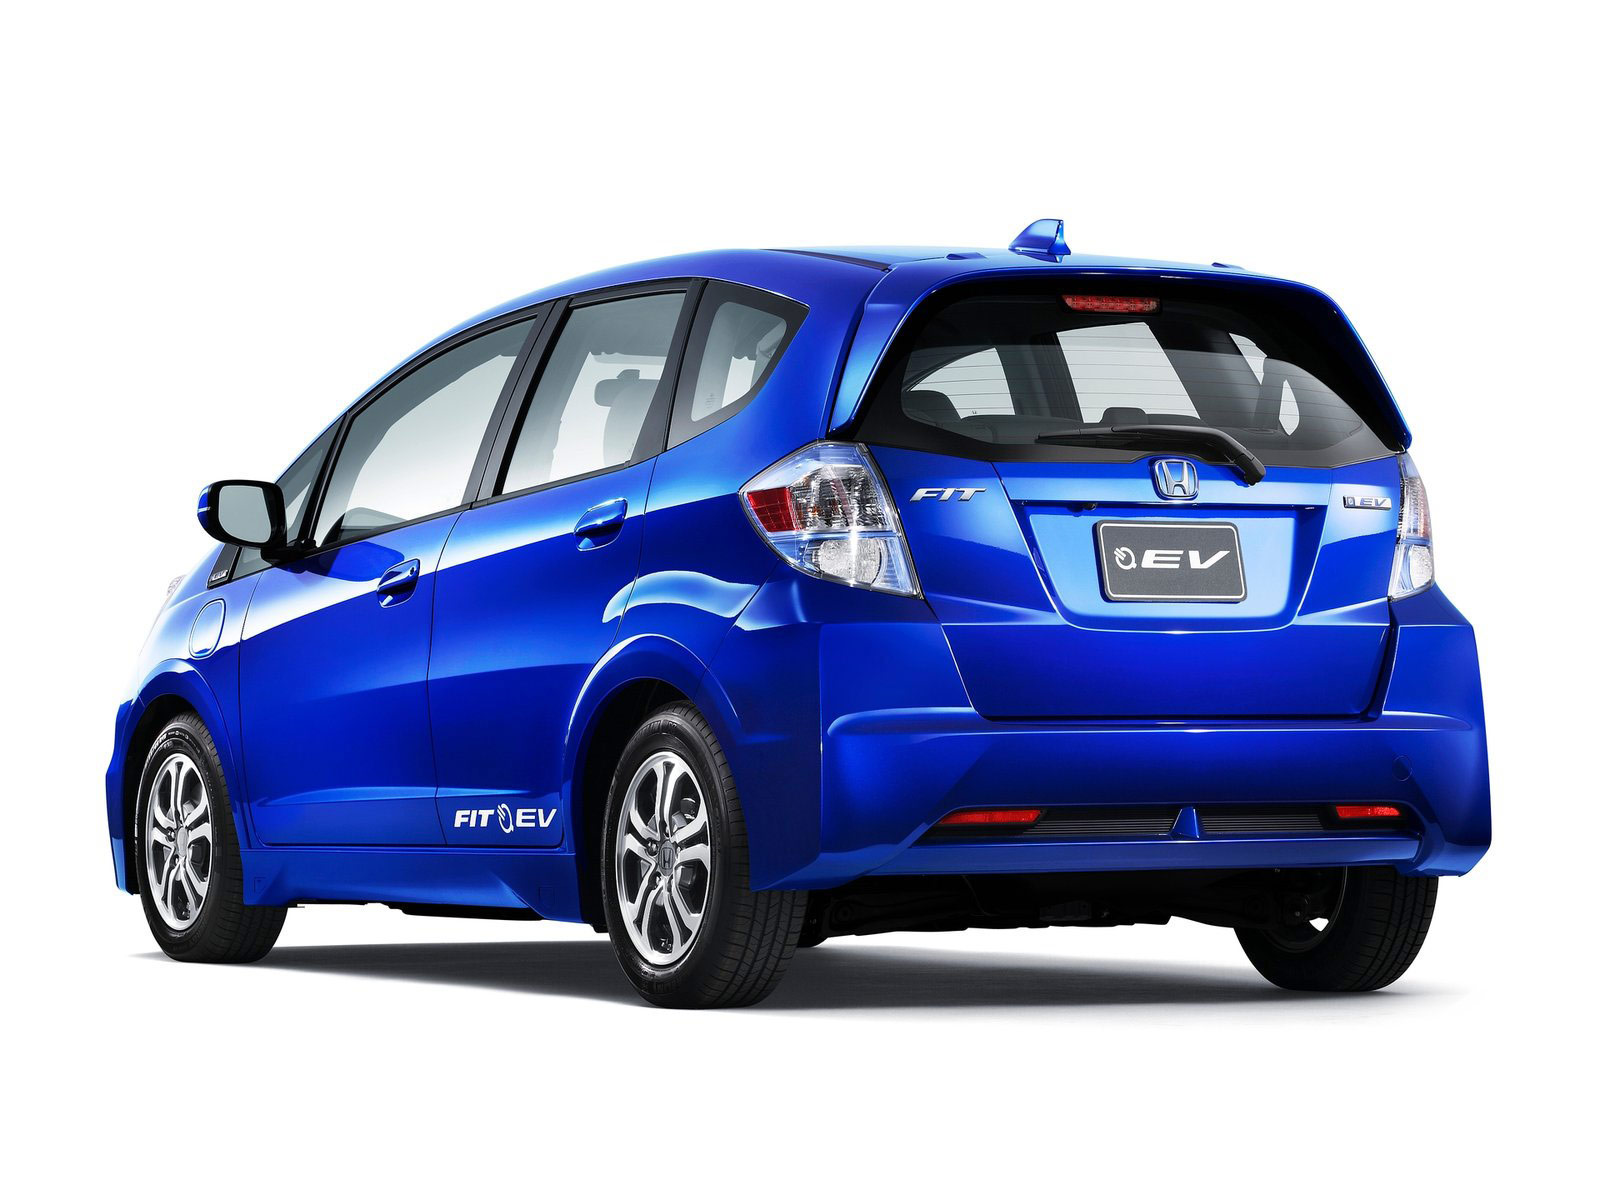 2013 Honda Fit Ev Japanese Car Wallpapers